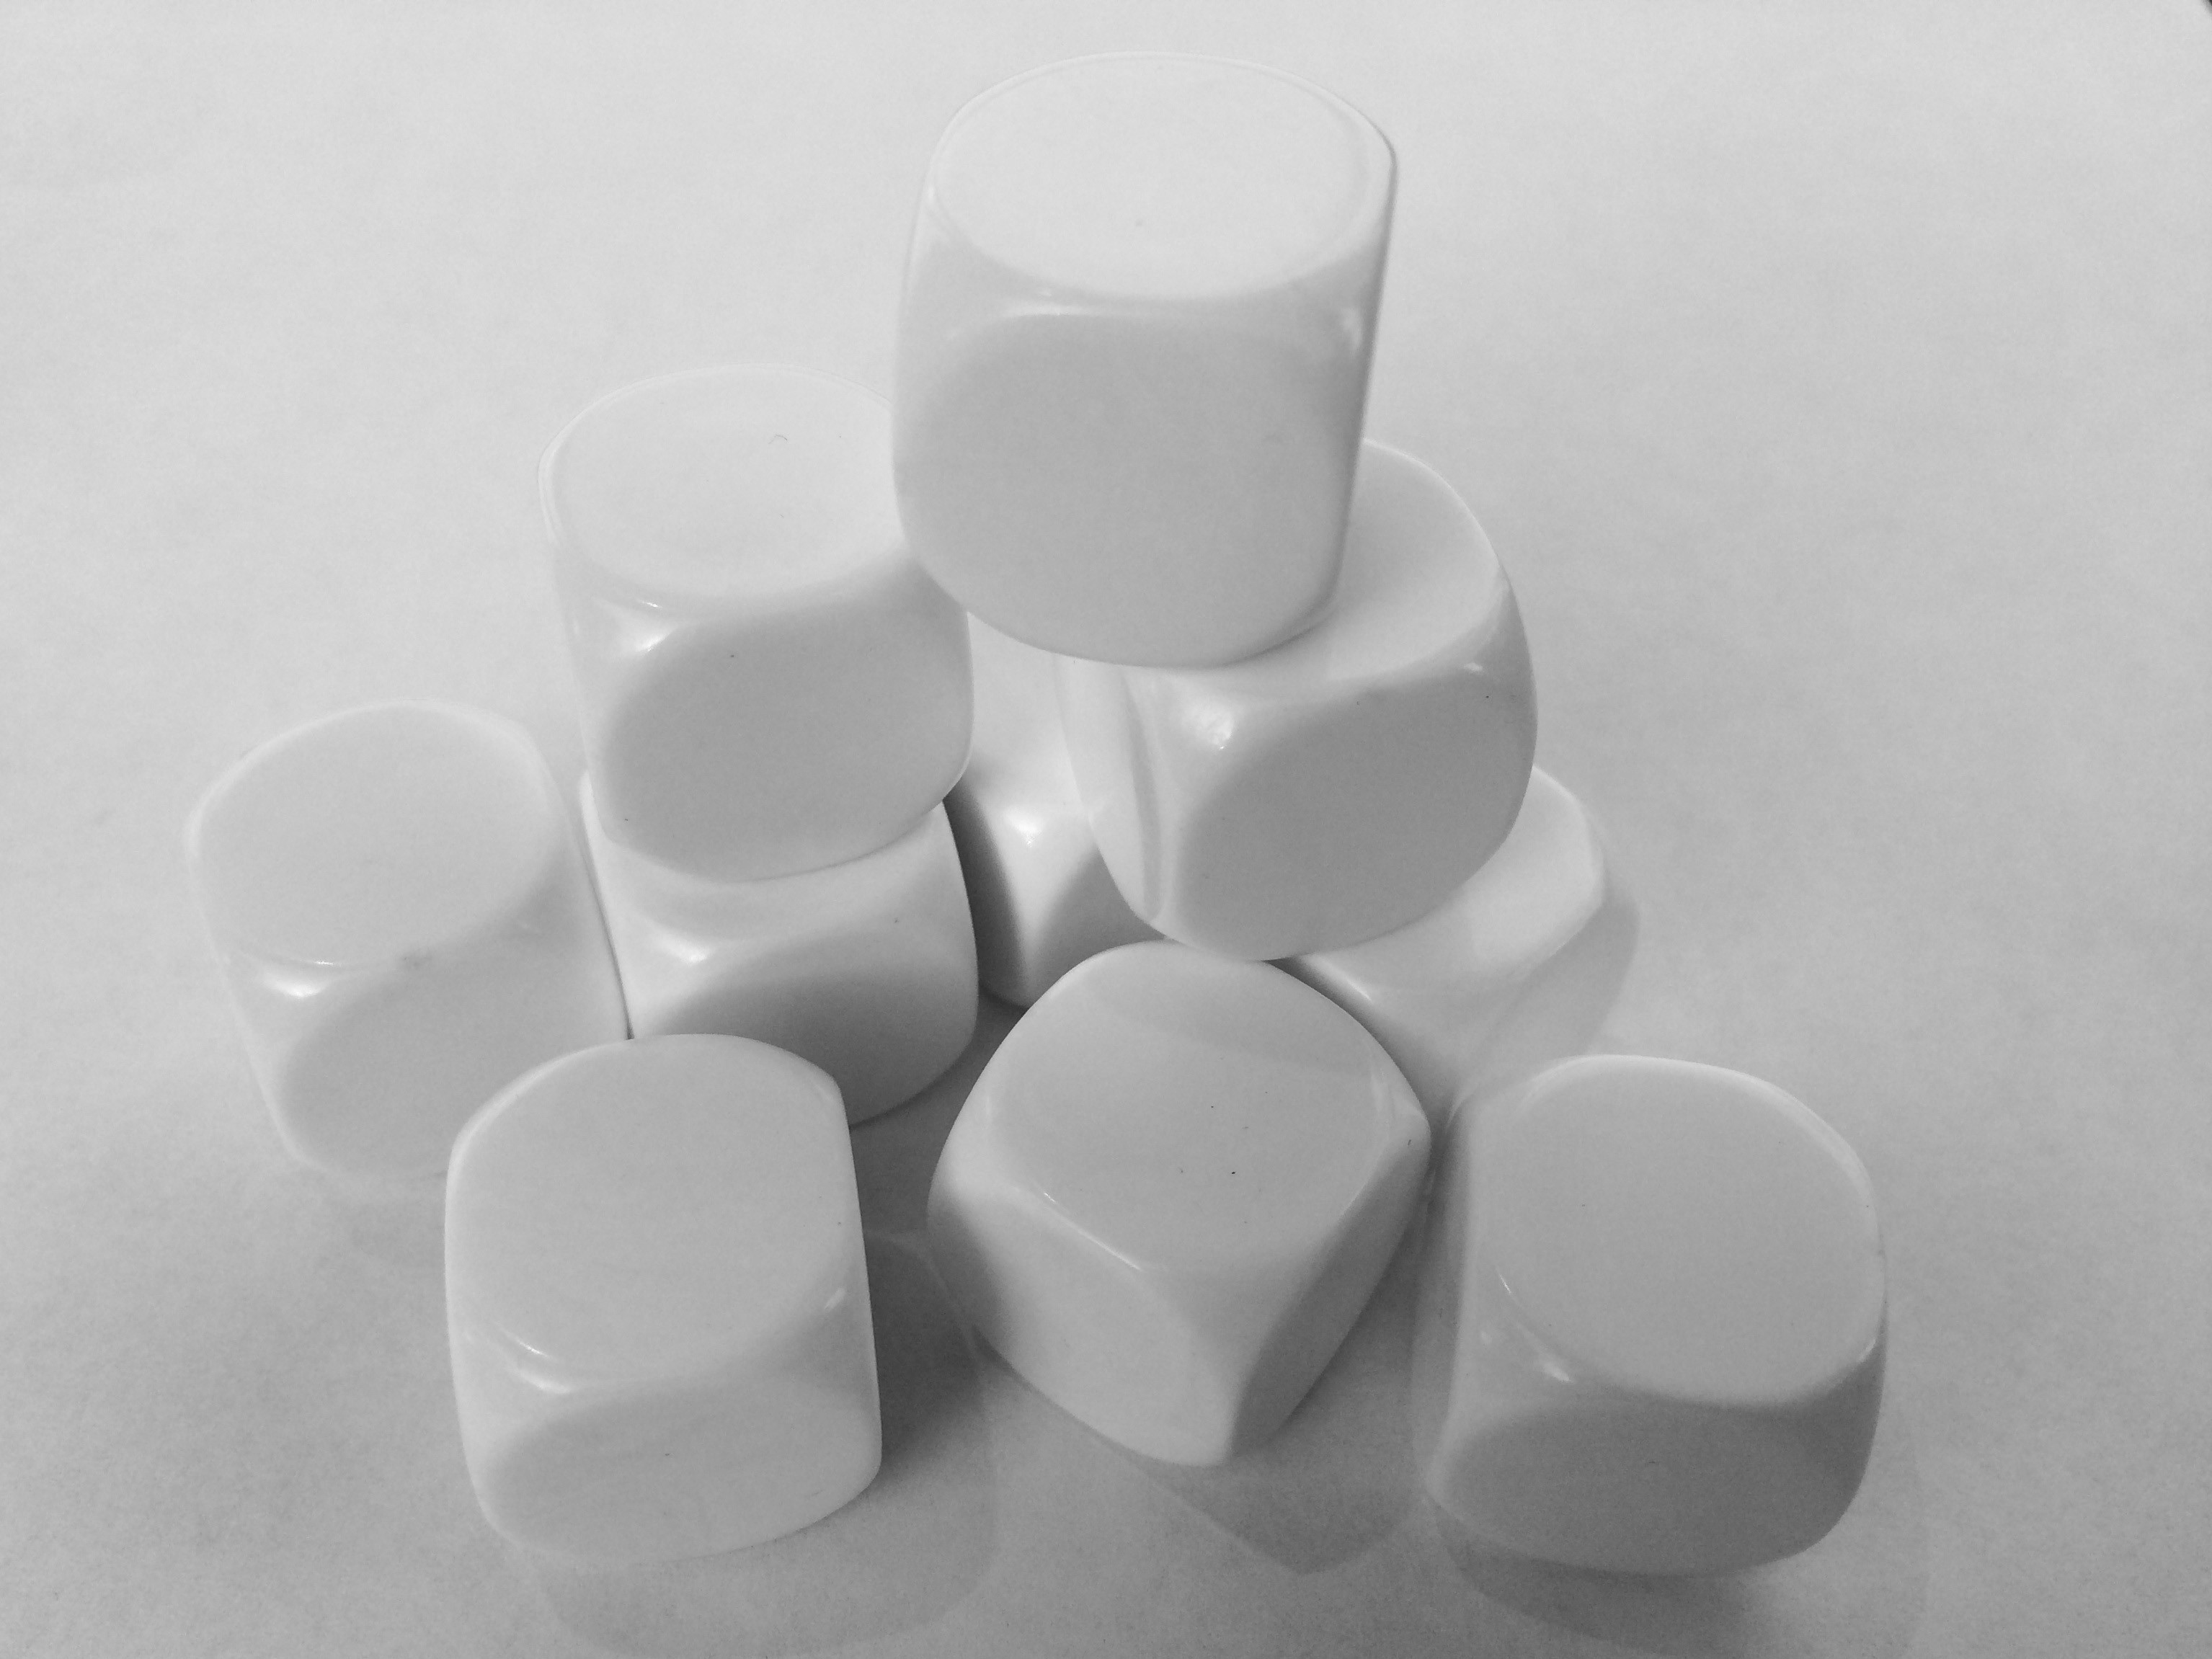 Large Blank Dice - 18mm (Set of 10)